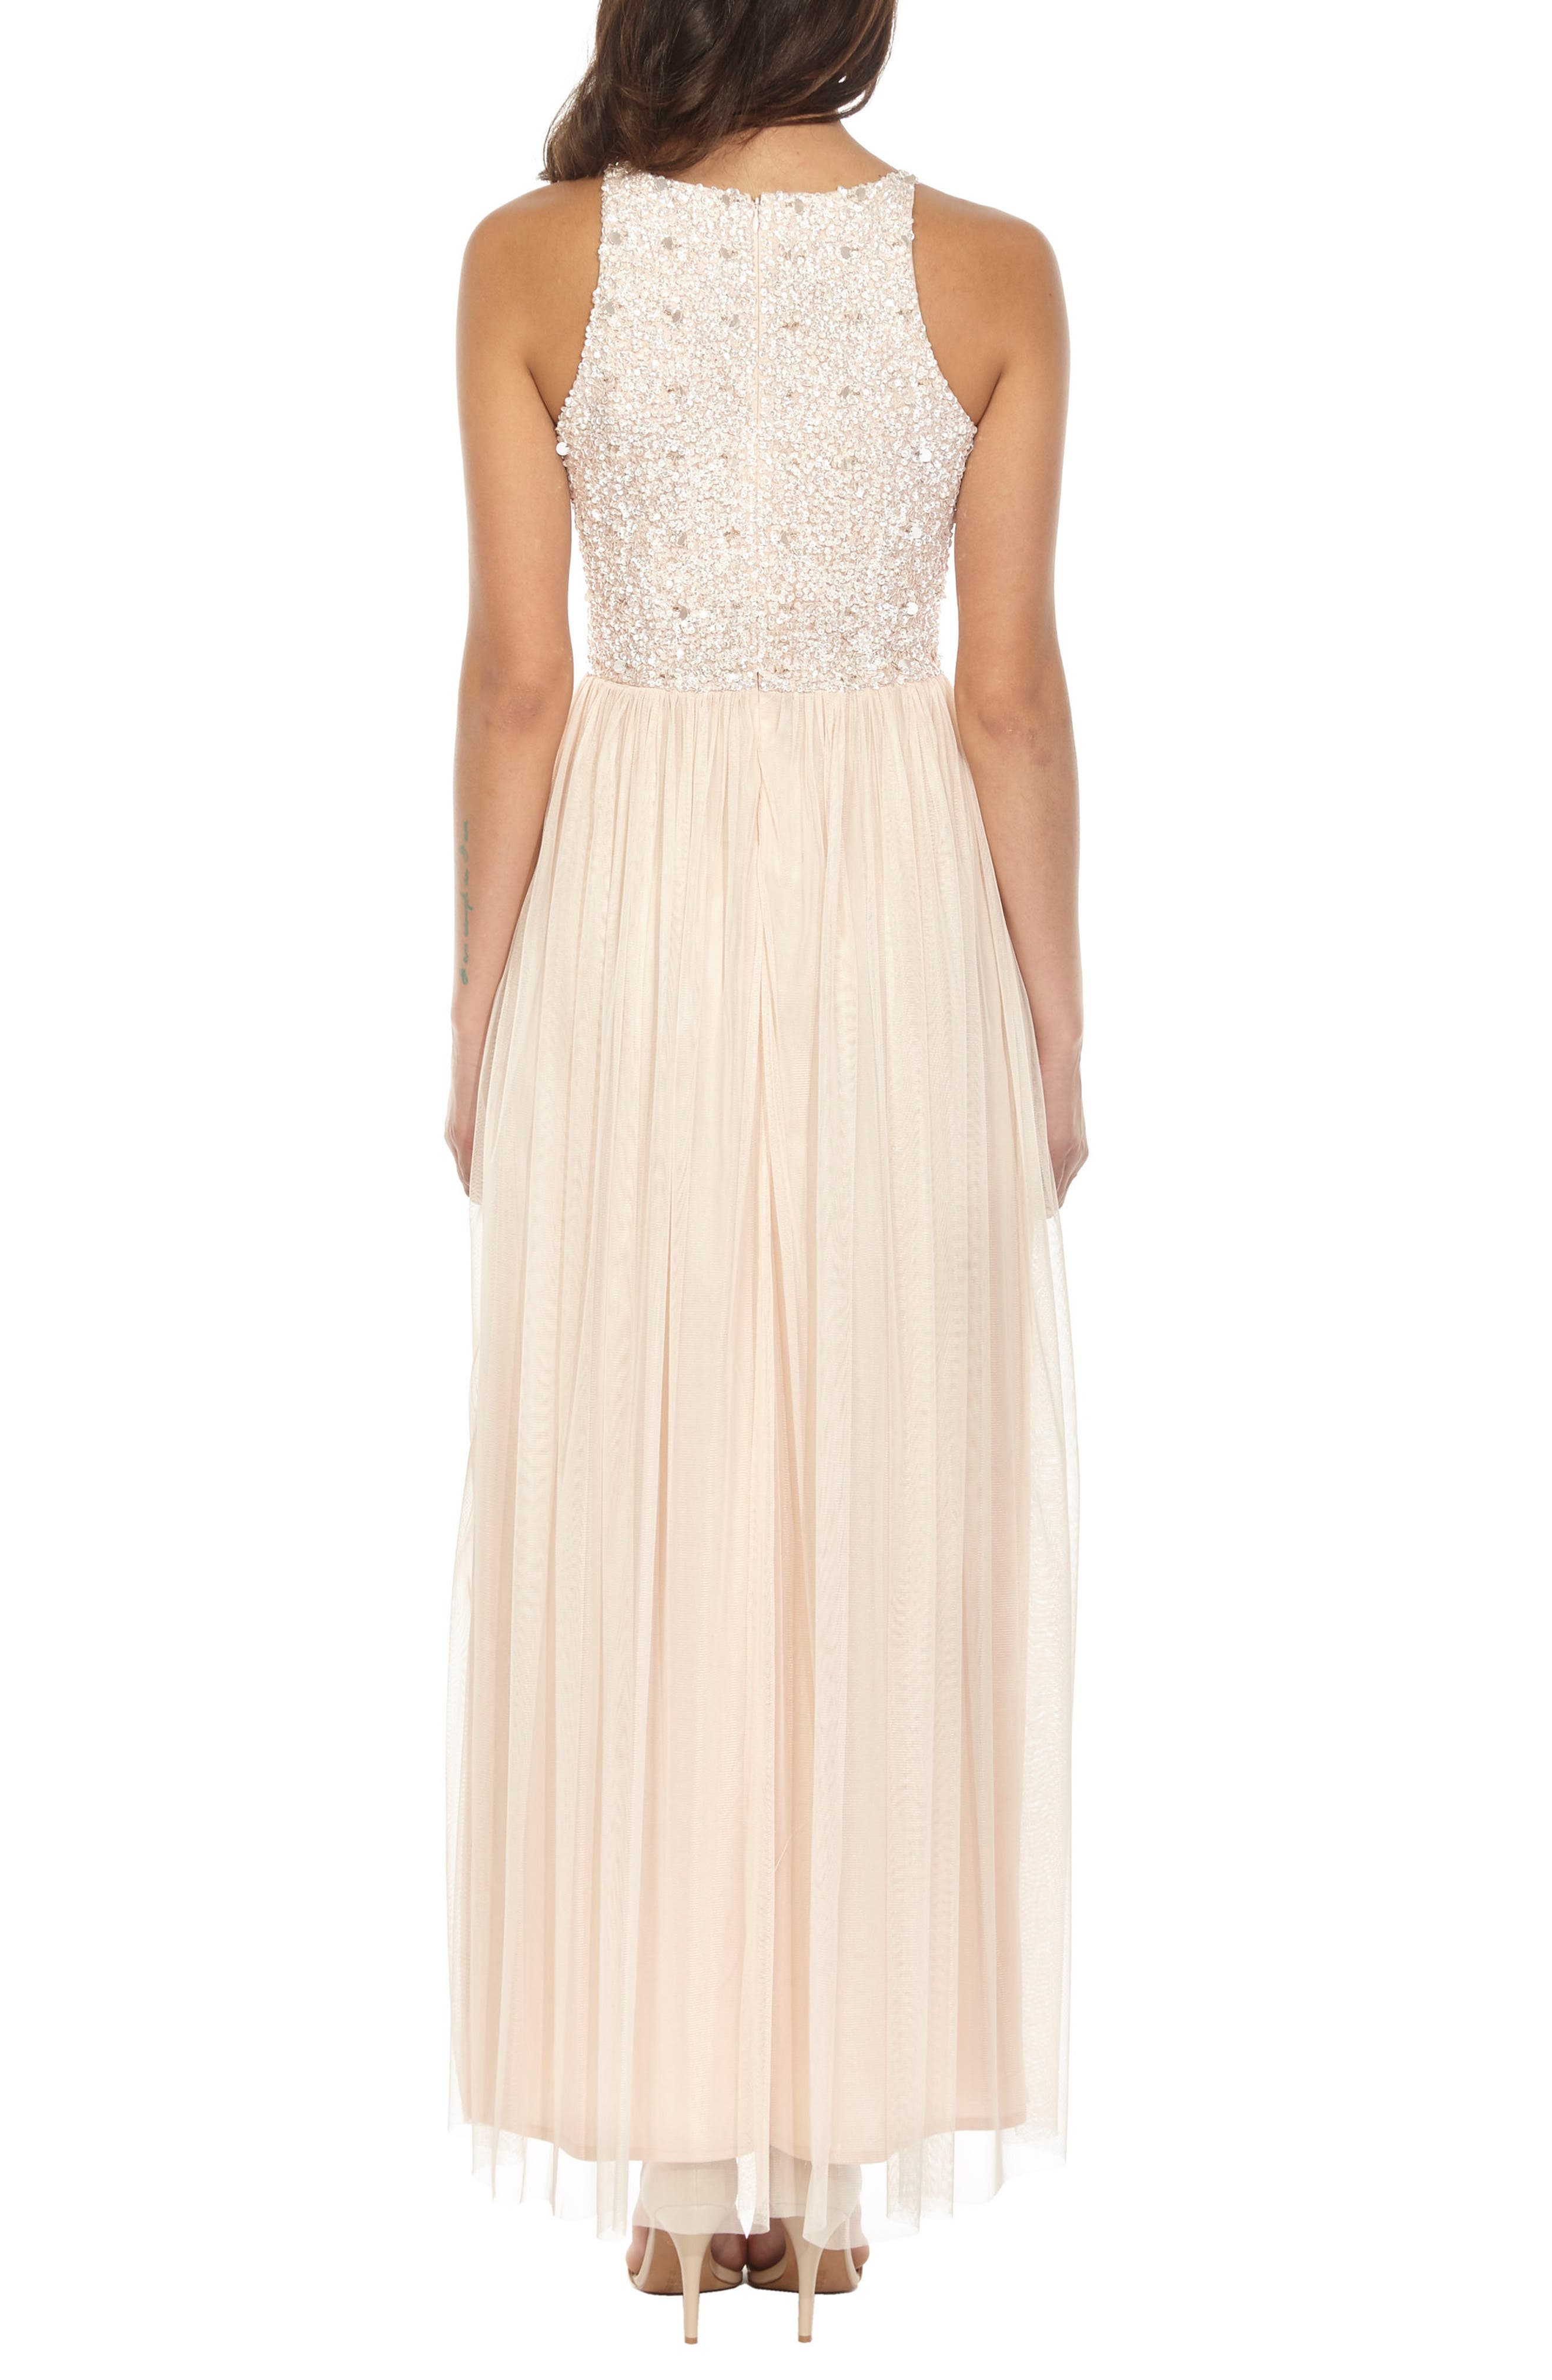 Picasso Embellished Bodice Maxi Dress,                             Alternate thumbnail 3, color,                             Nude